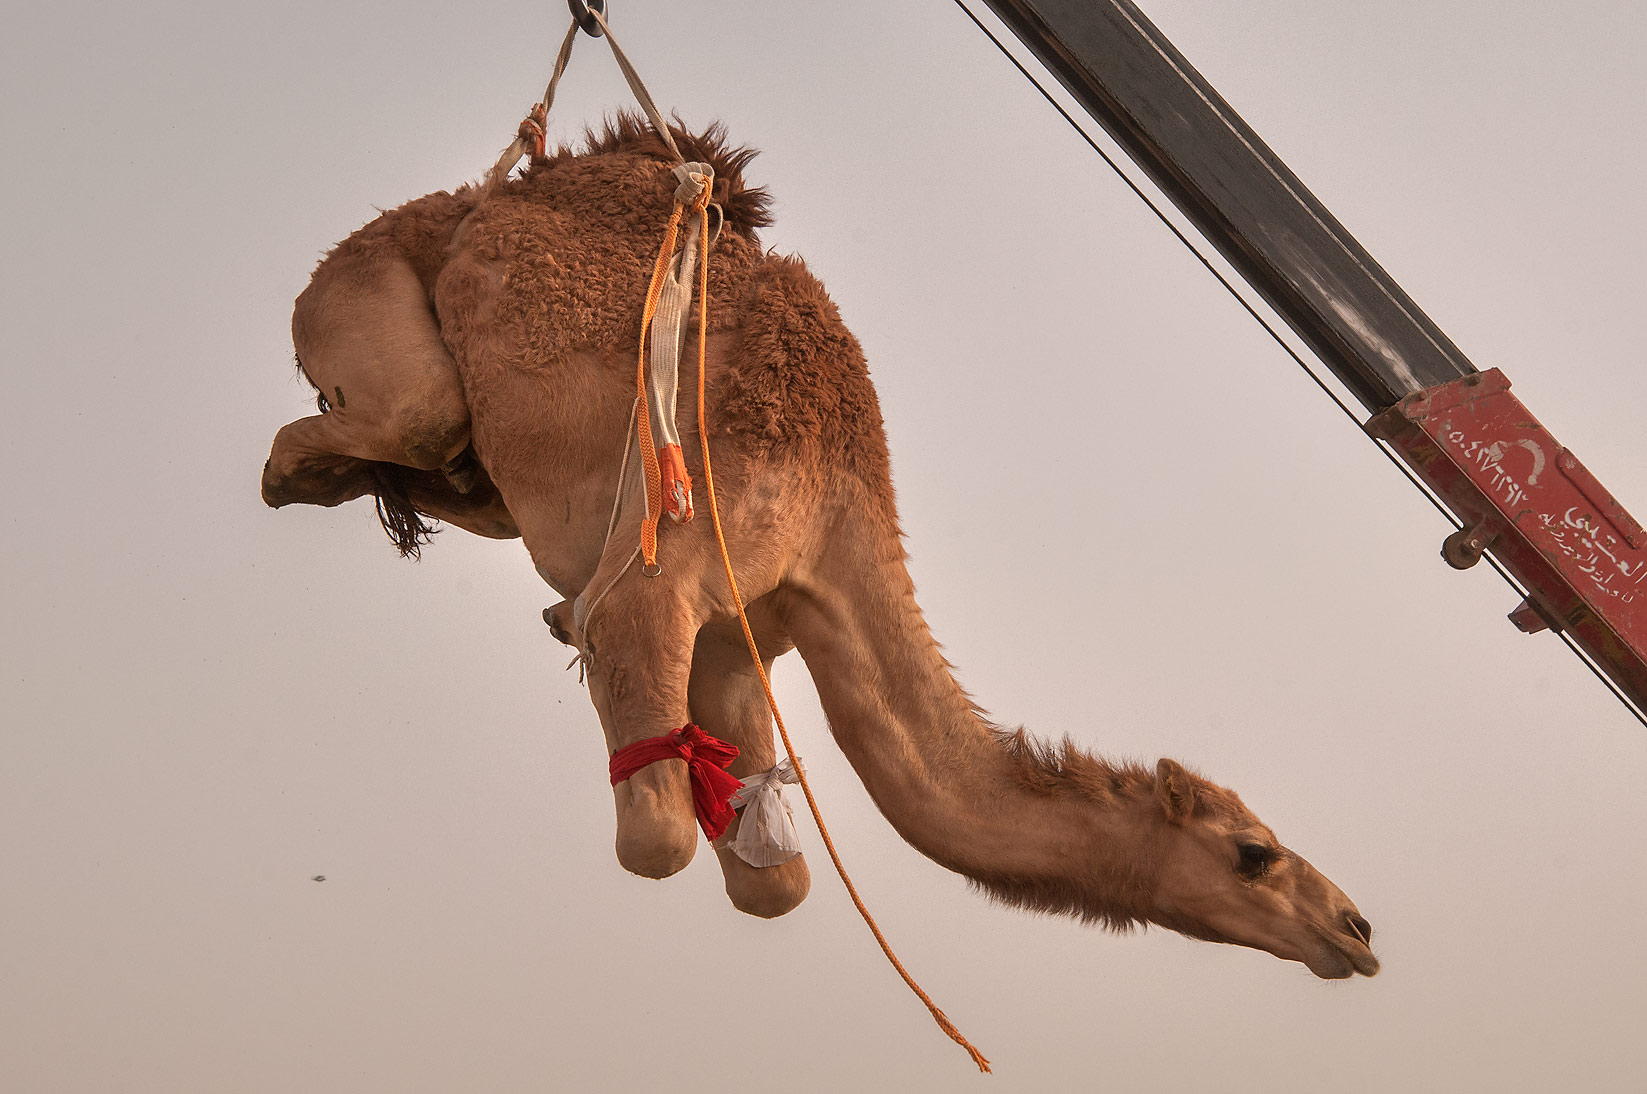 Camel suspended in air by hydraulic crane in...Market, Abu Hamour area. Doha, Qatar